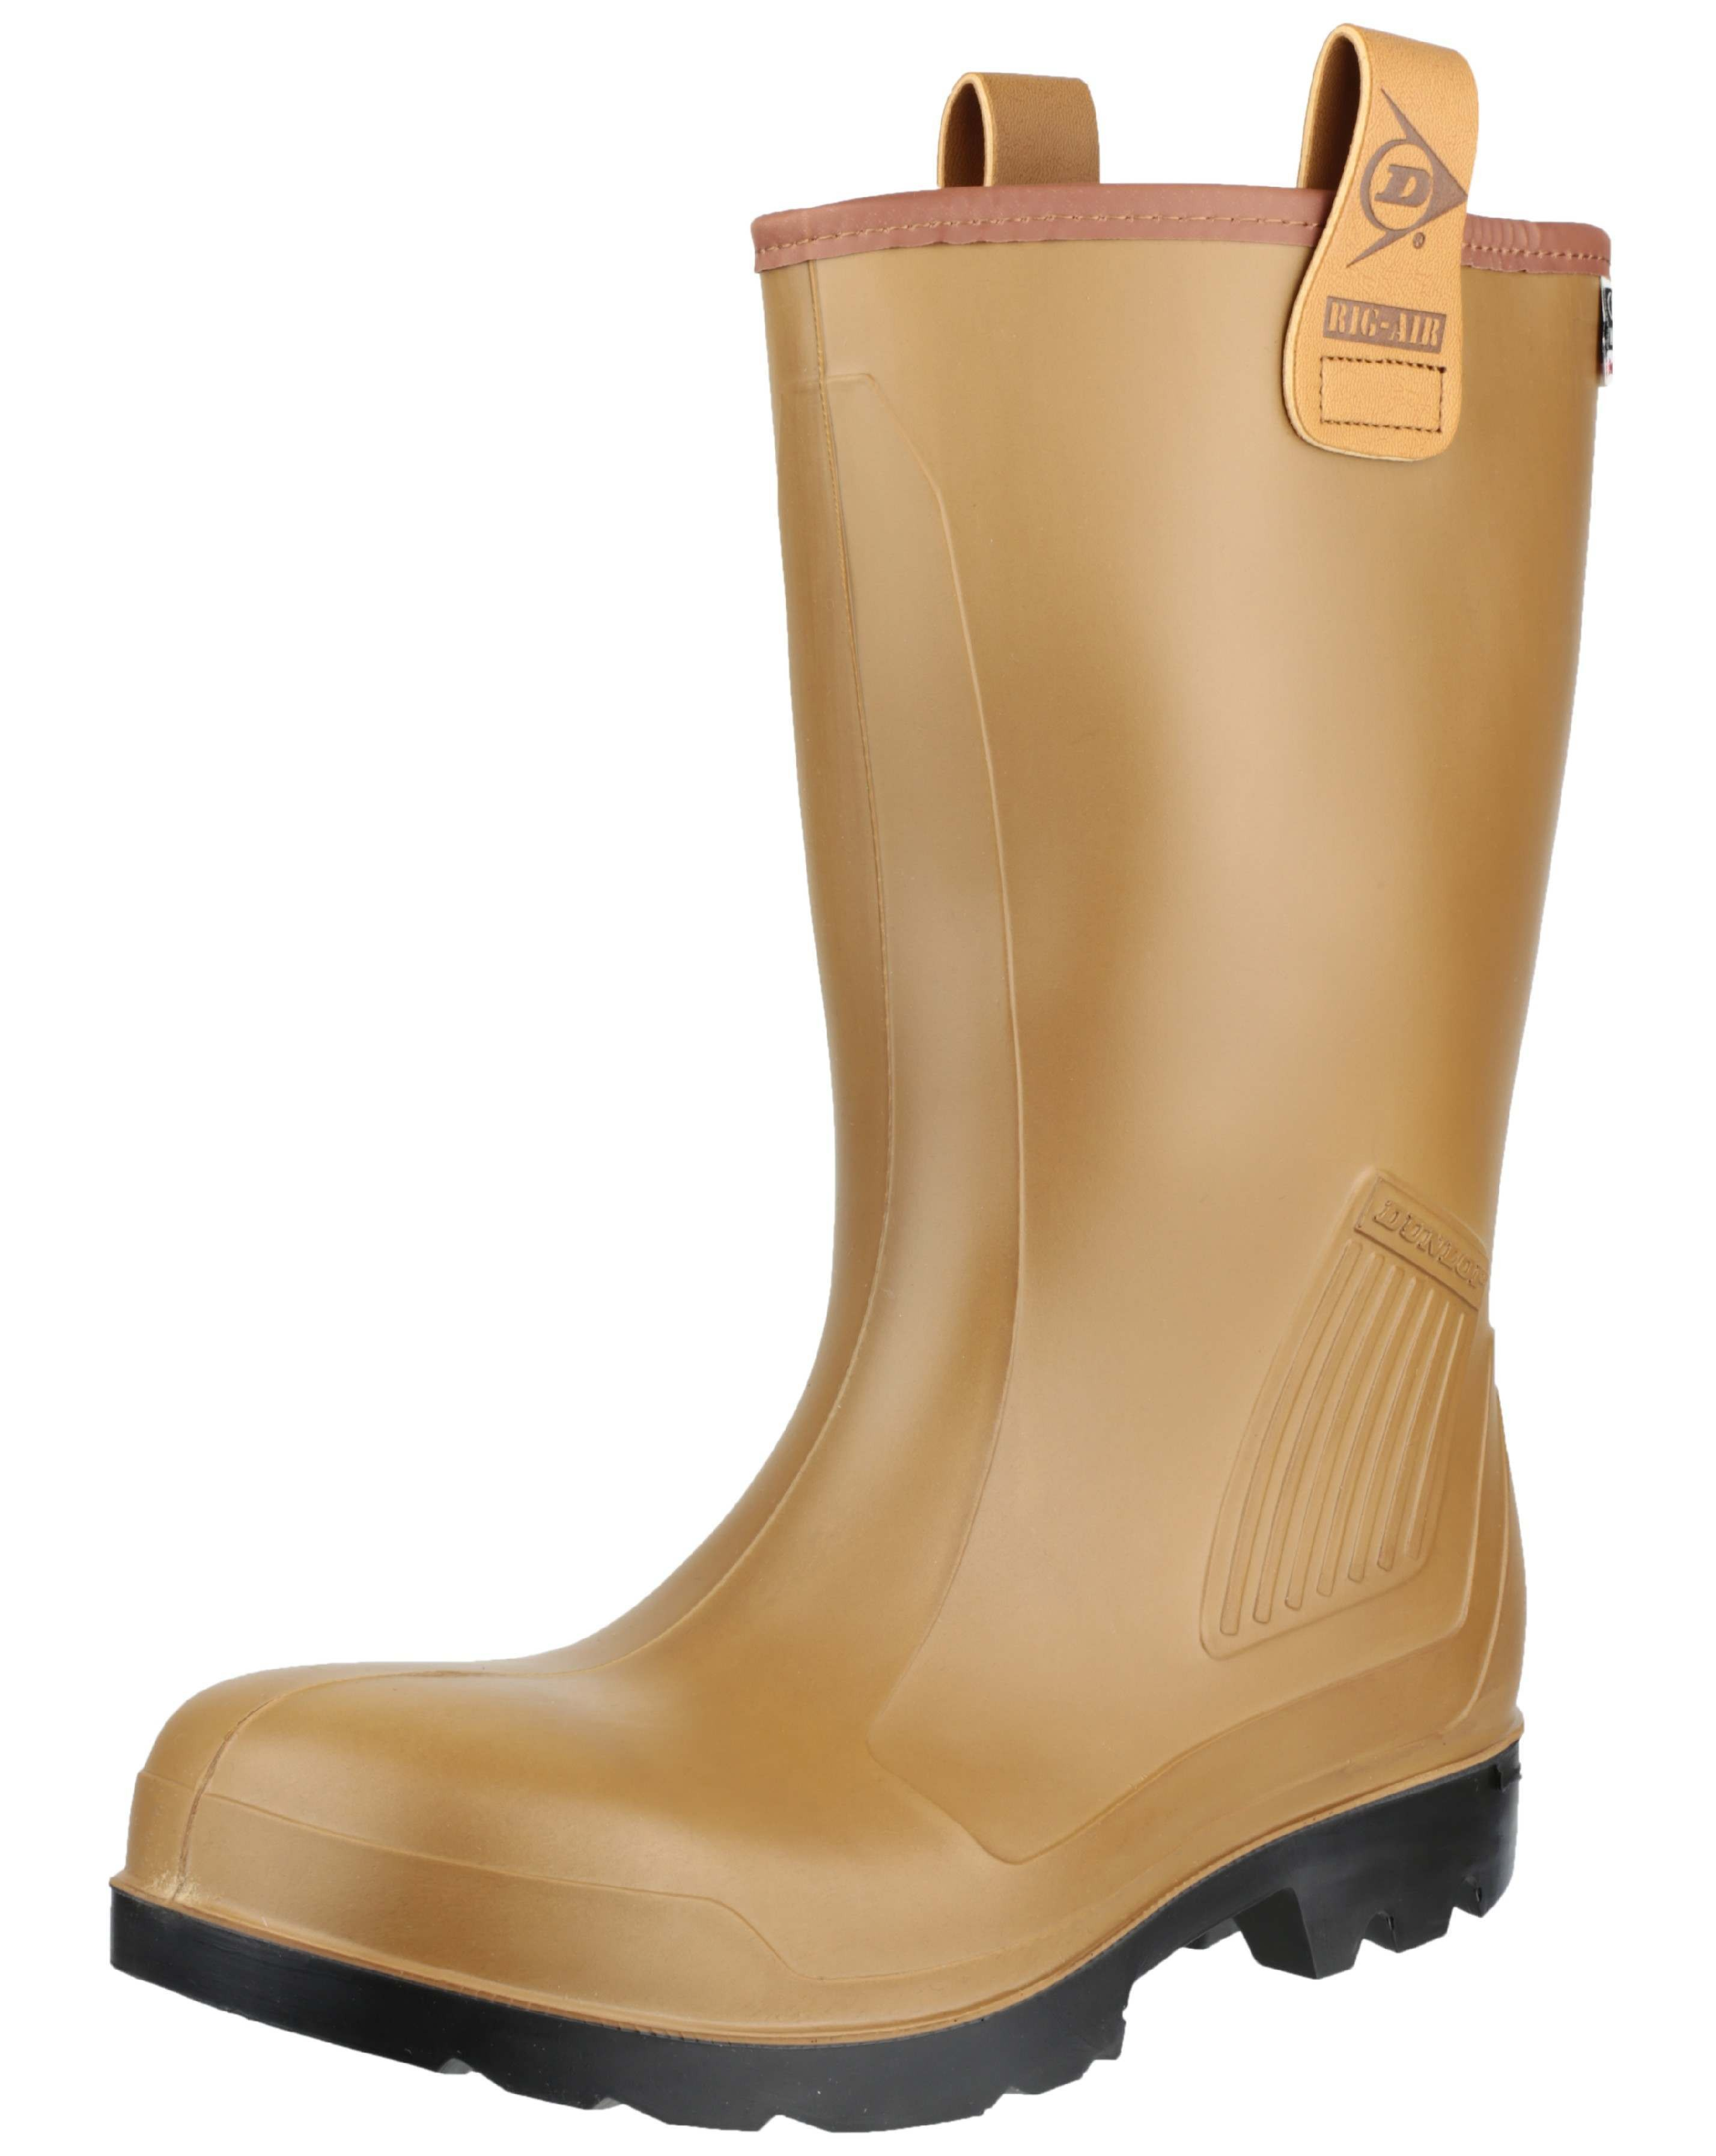 Best Muck Boots For Dog Walking